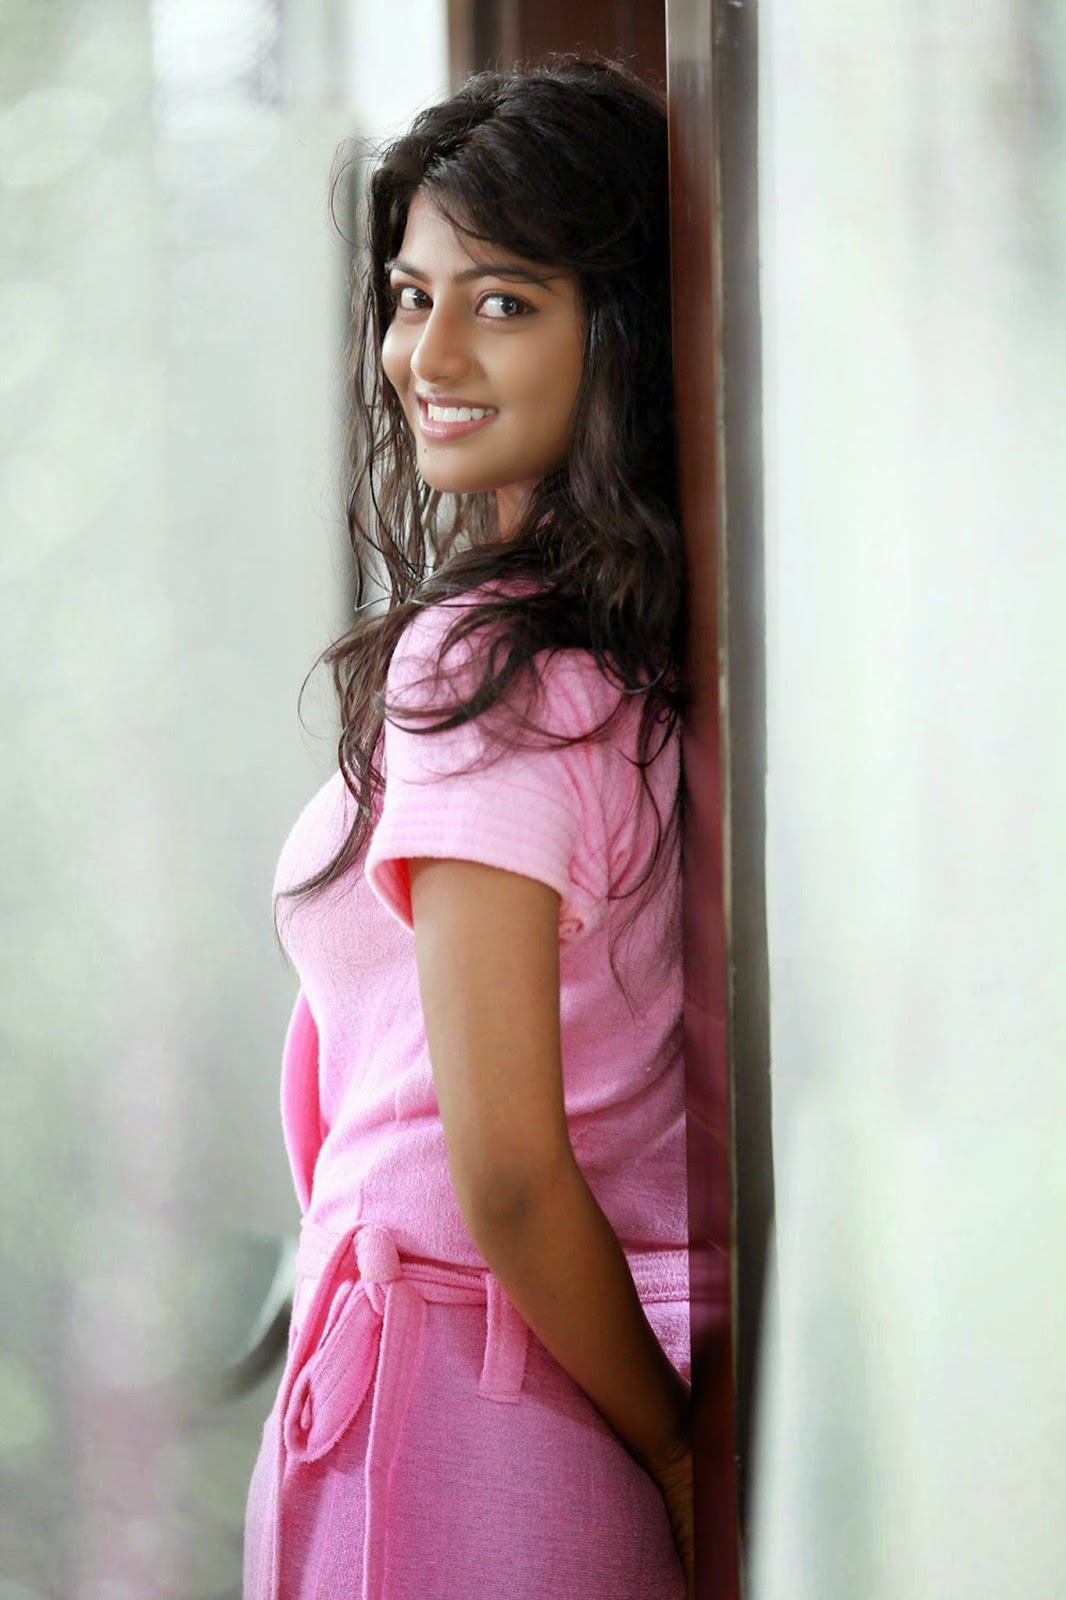 rakshitha hd wallpapers download - hot actress of south - filmy hot